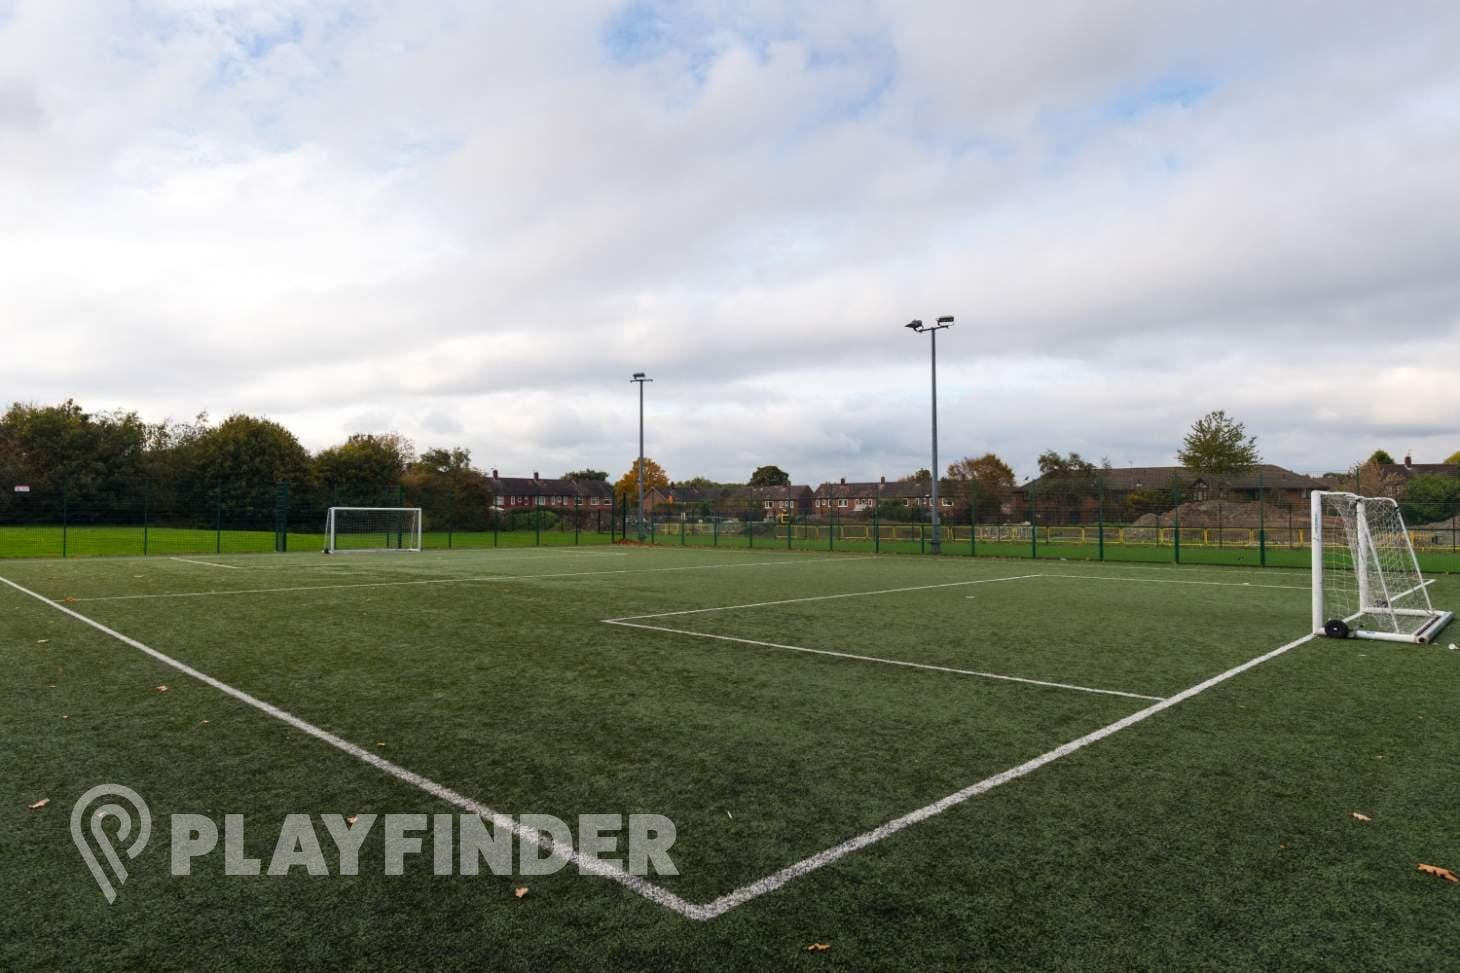 Manchester Enterprise Academy Wythenshawe 5 a side | 3G Astroturf football pitch